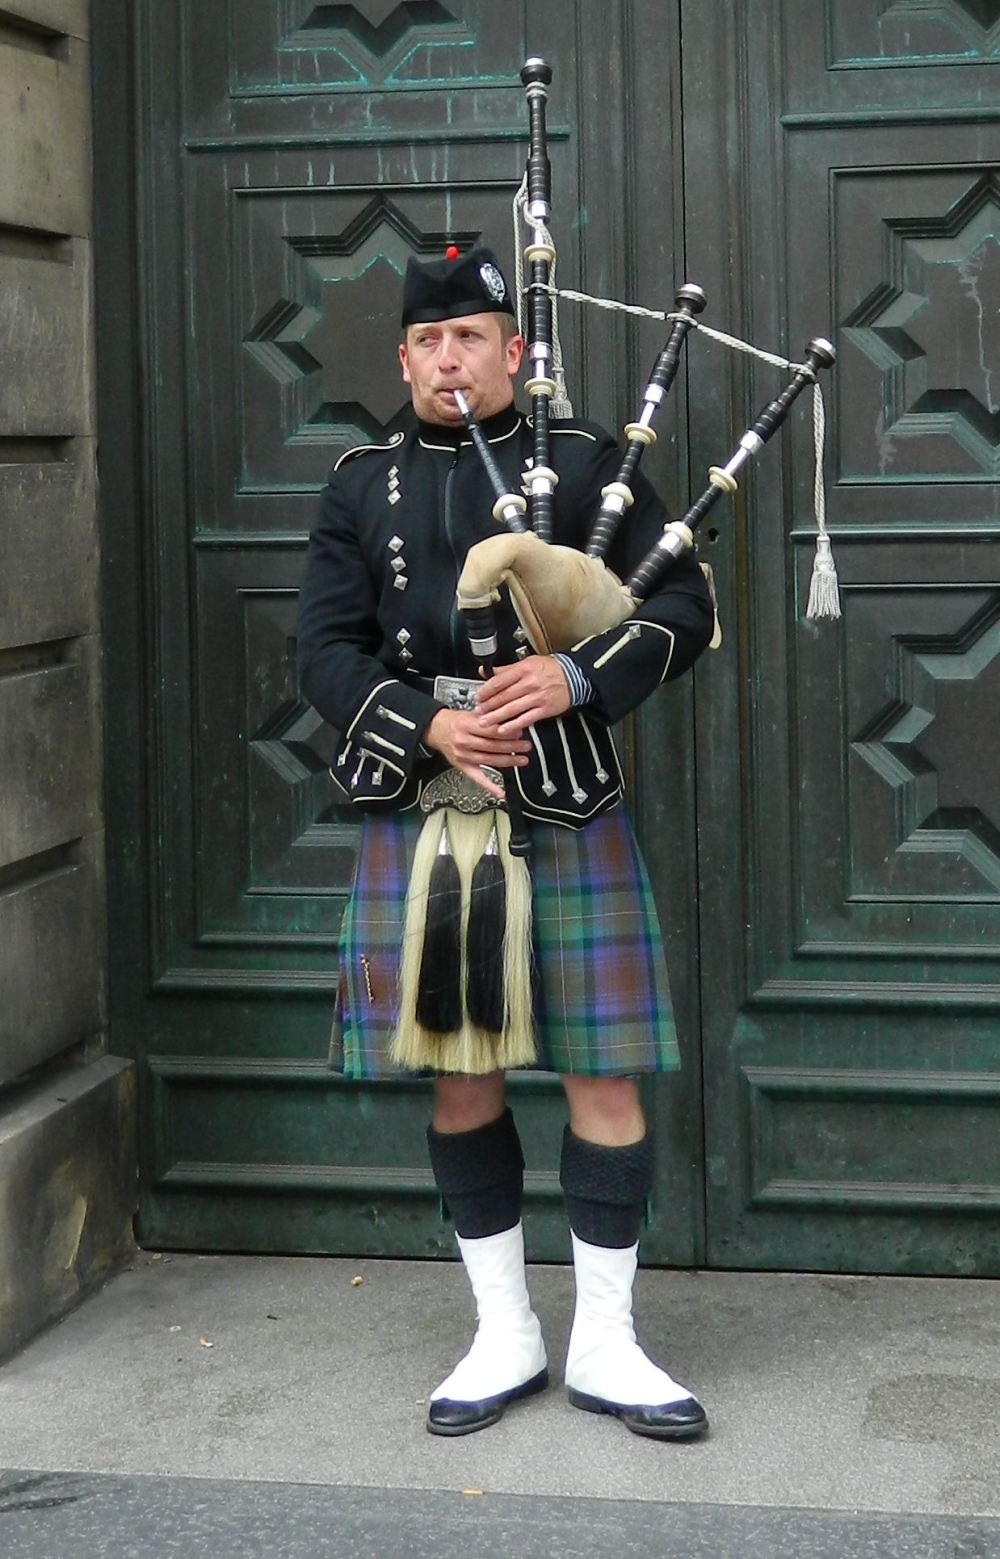 3.smBagpipes